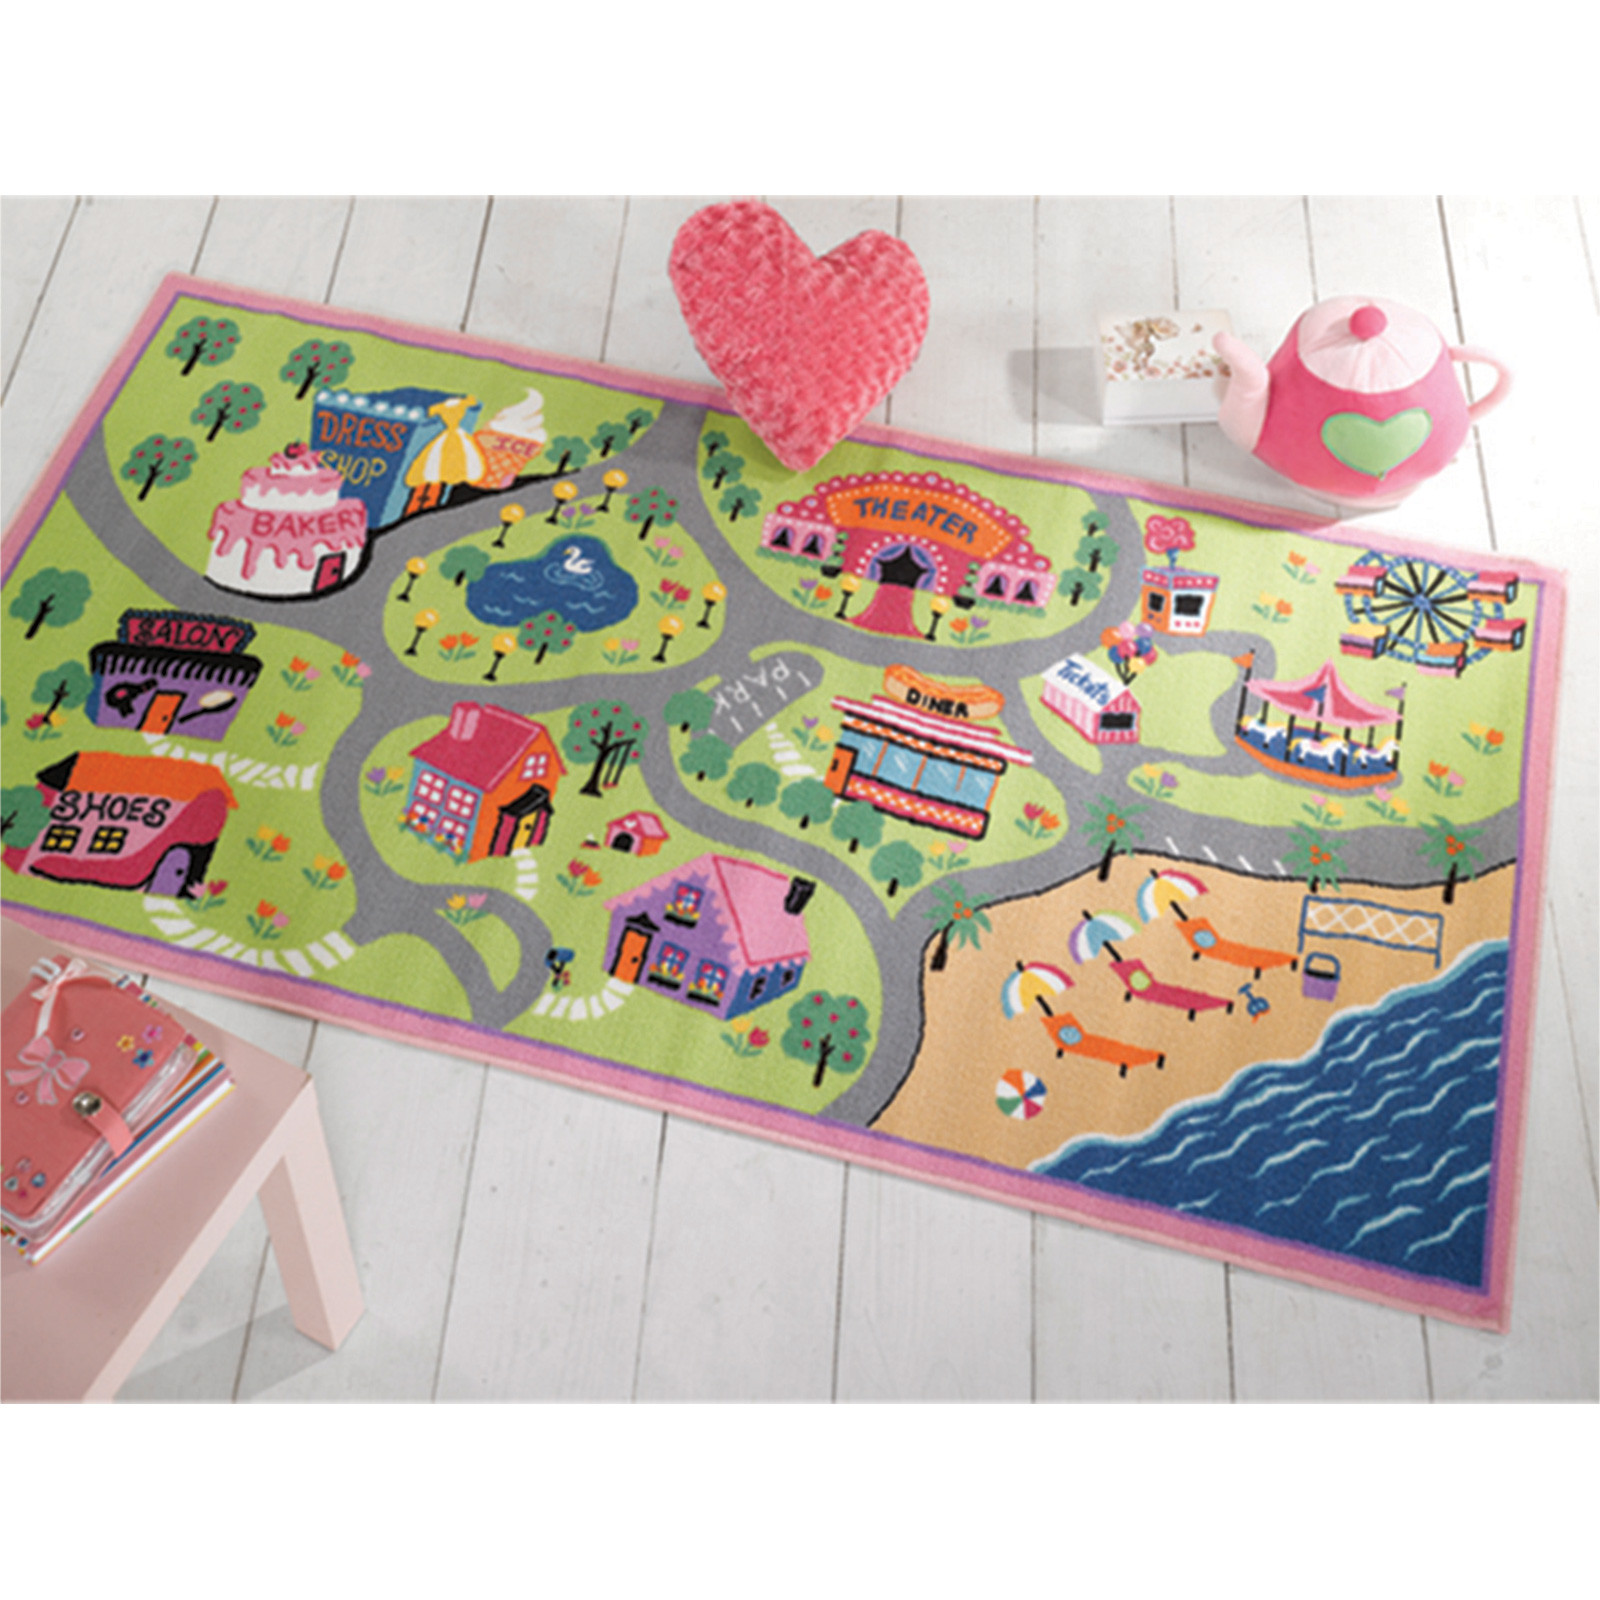 Girls Bedroom Rug - Home Design Ideas